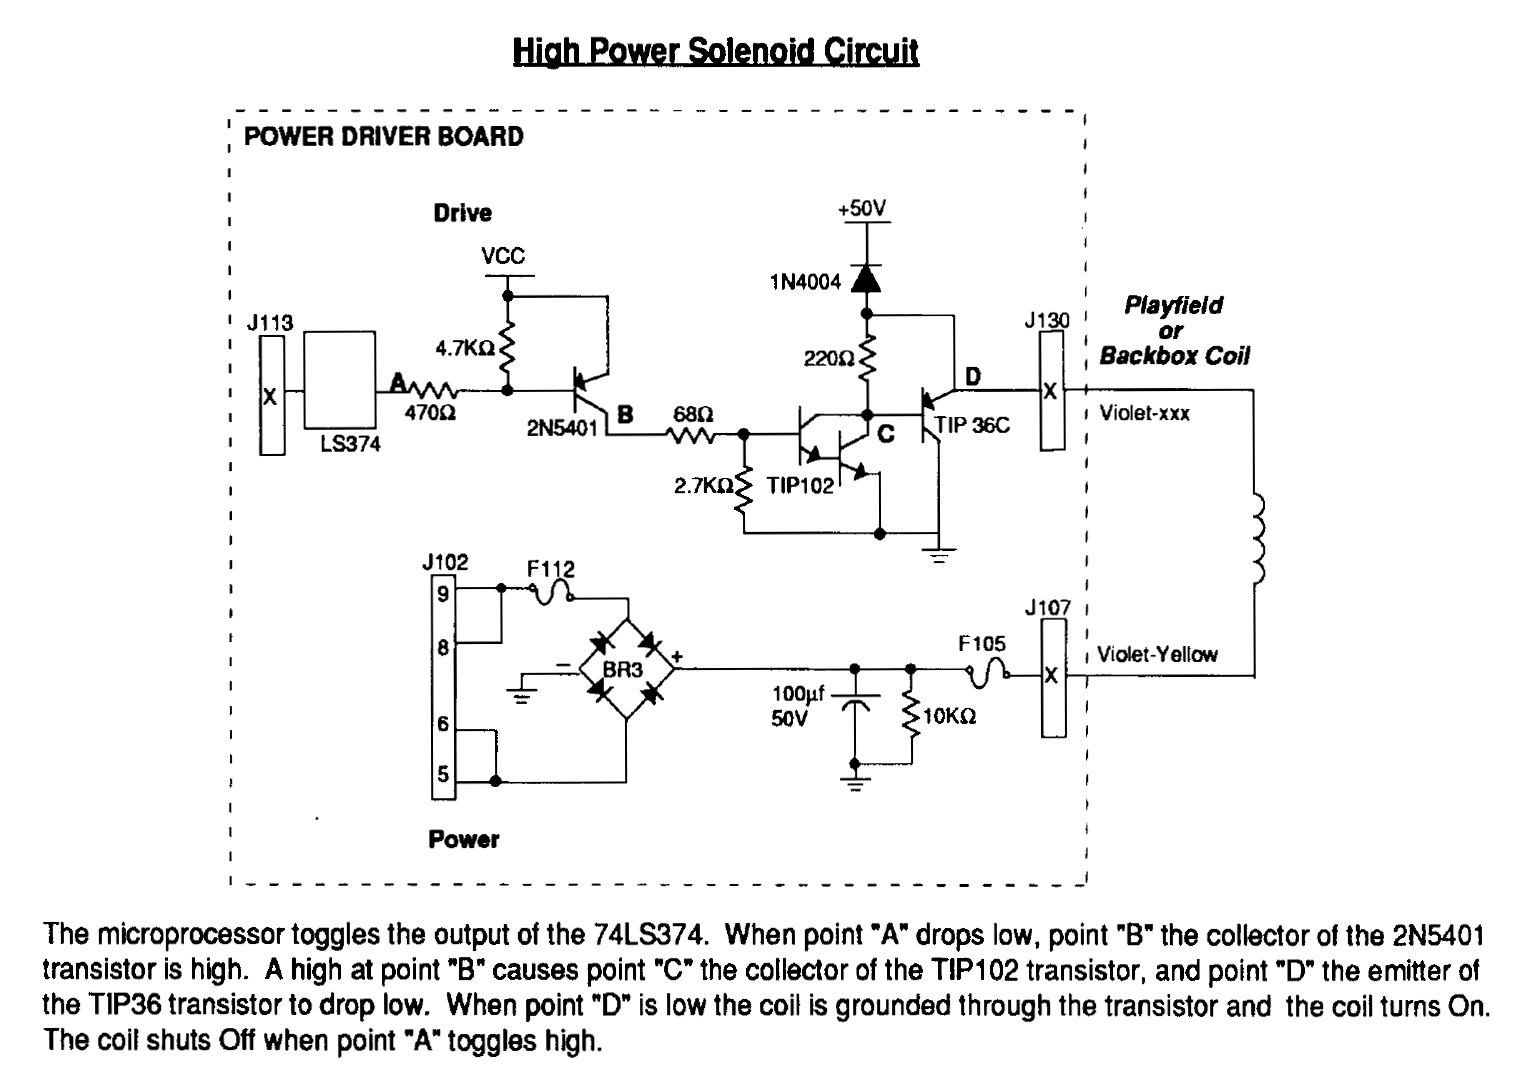 medium resolution of the bottom half of this williams high power solenoid circuit actually describes most of